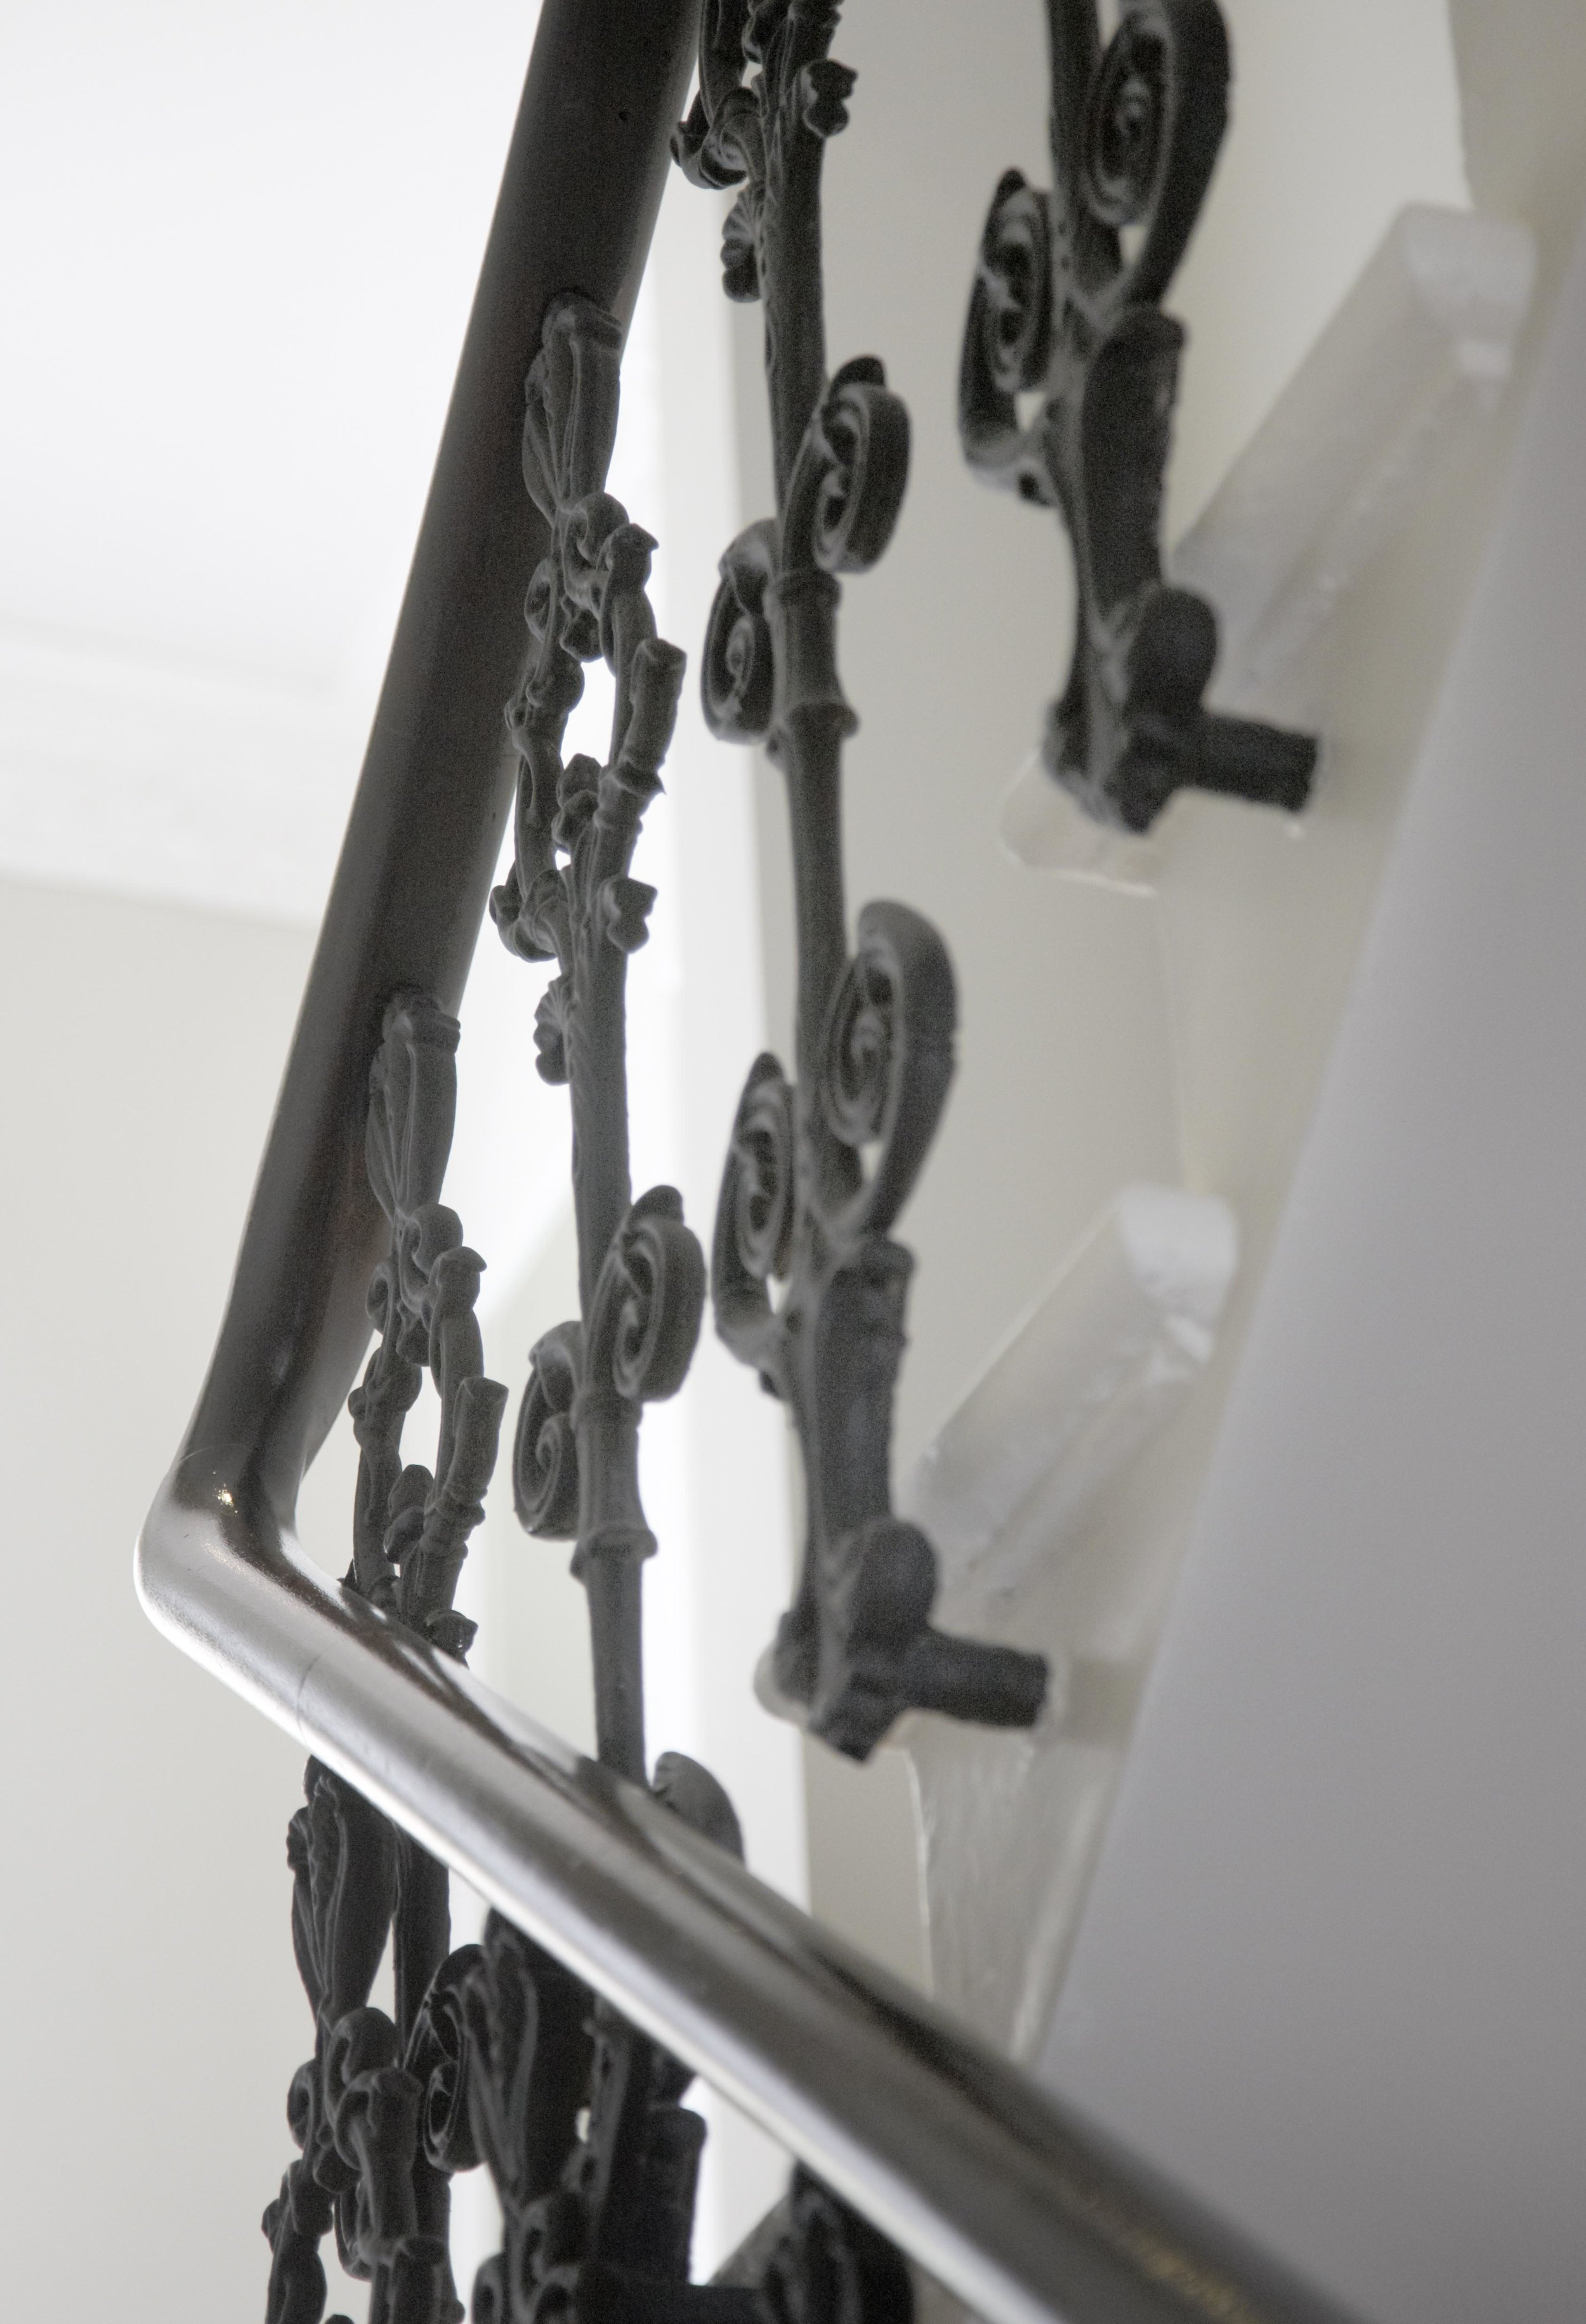 Matt black painted balusters and mahogany banister, French polished